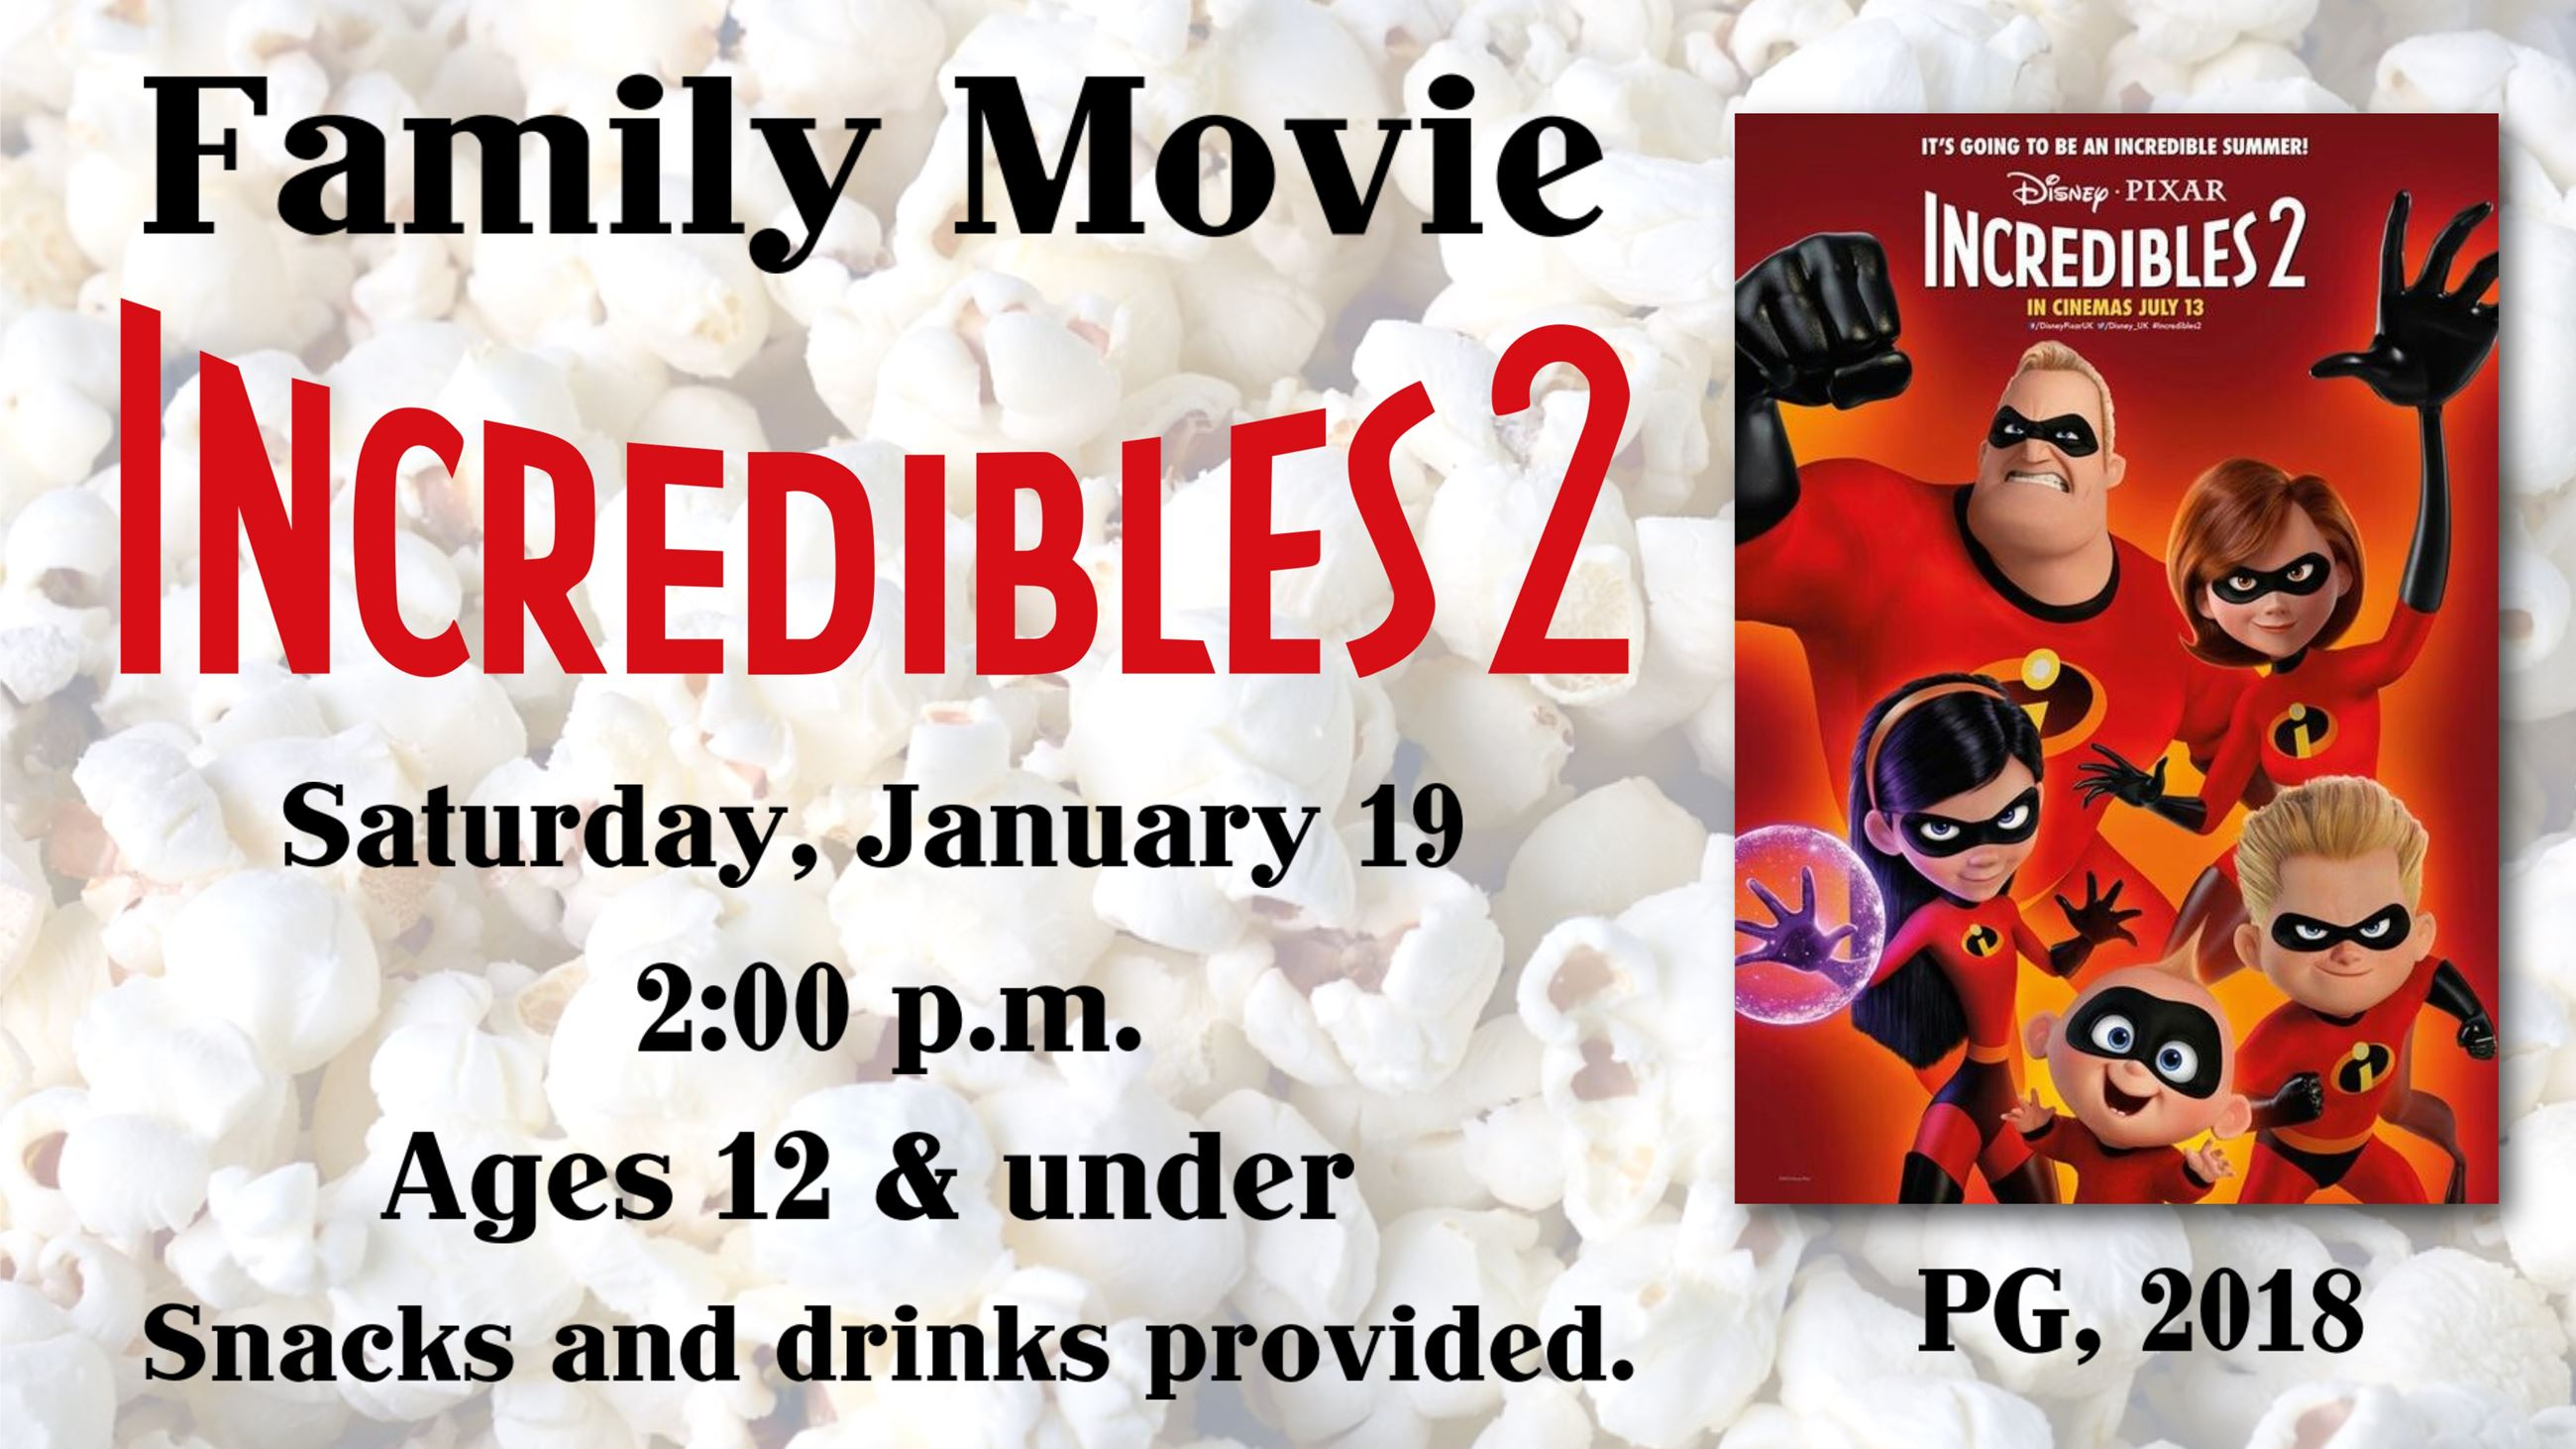 Family Movie, Incredibles 2. January 19. 2 p.m.